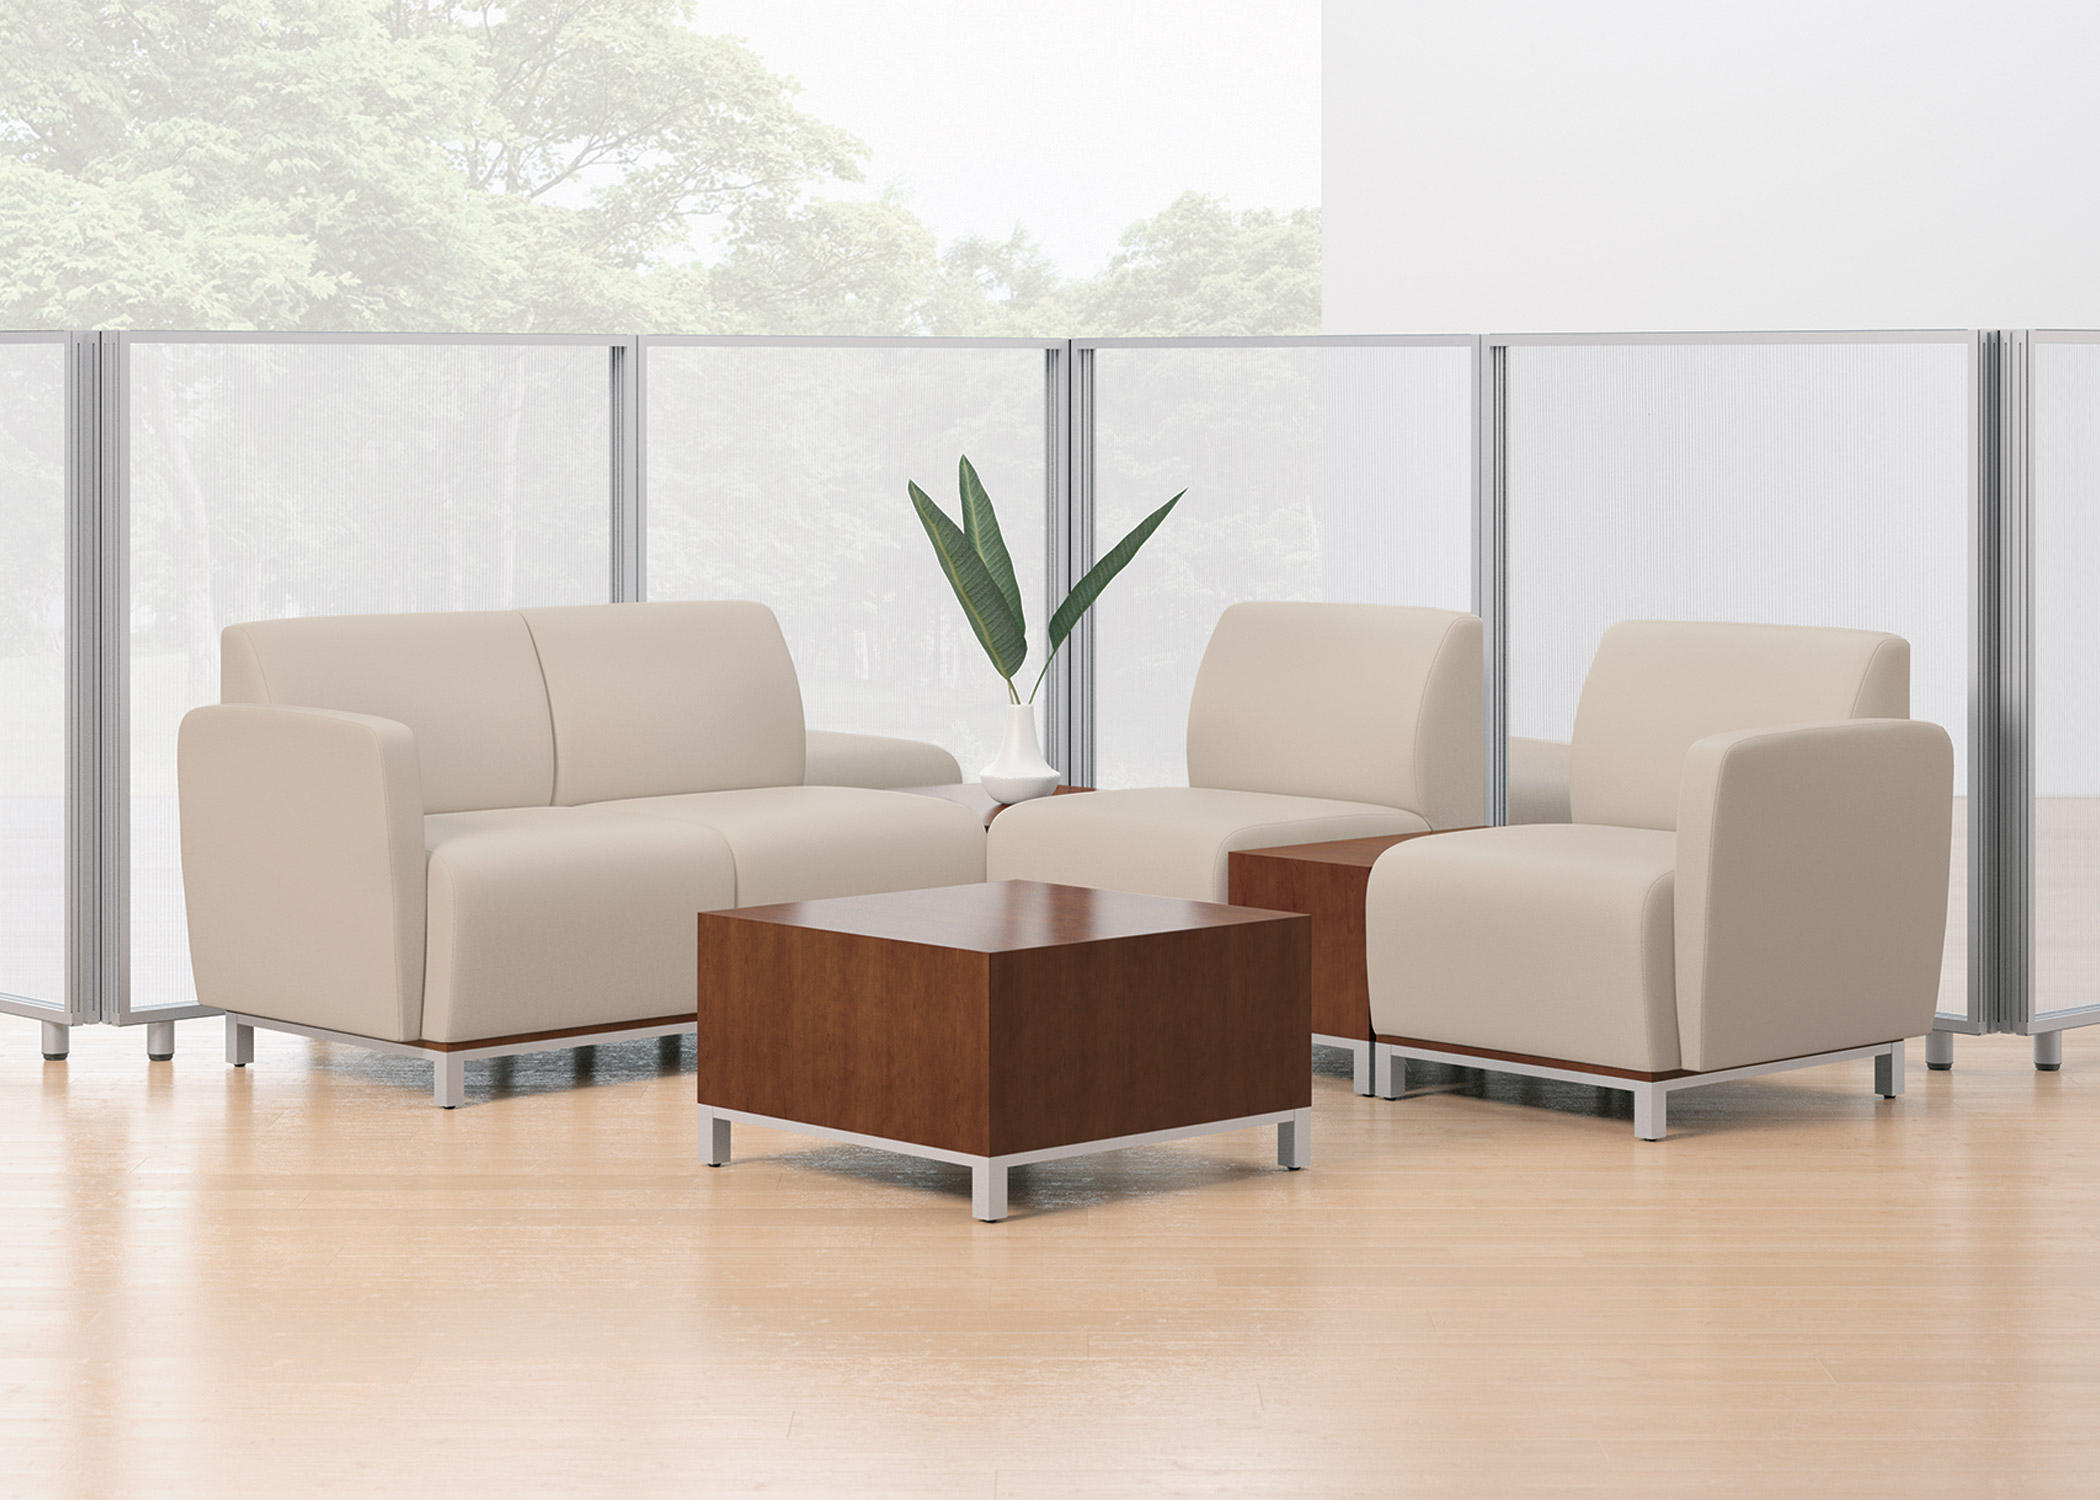 SWIFT 45° OUTSIDE CORNER - Modular seating elements from National ...